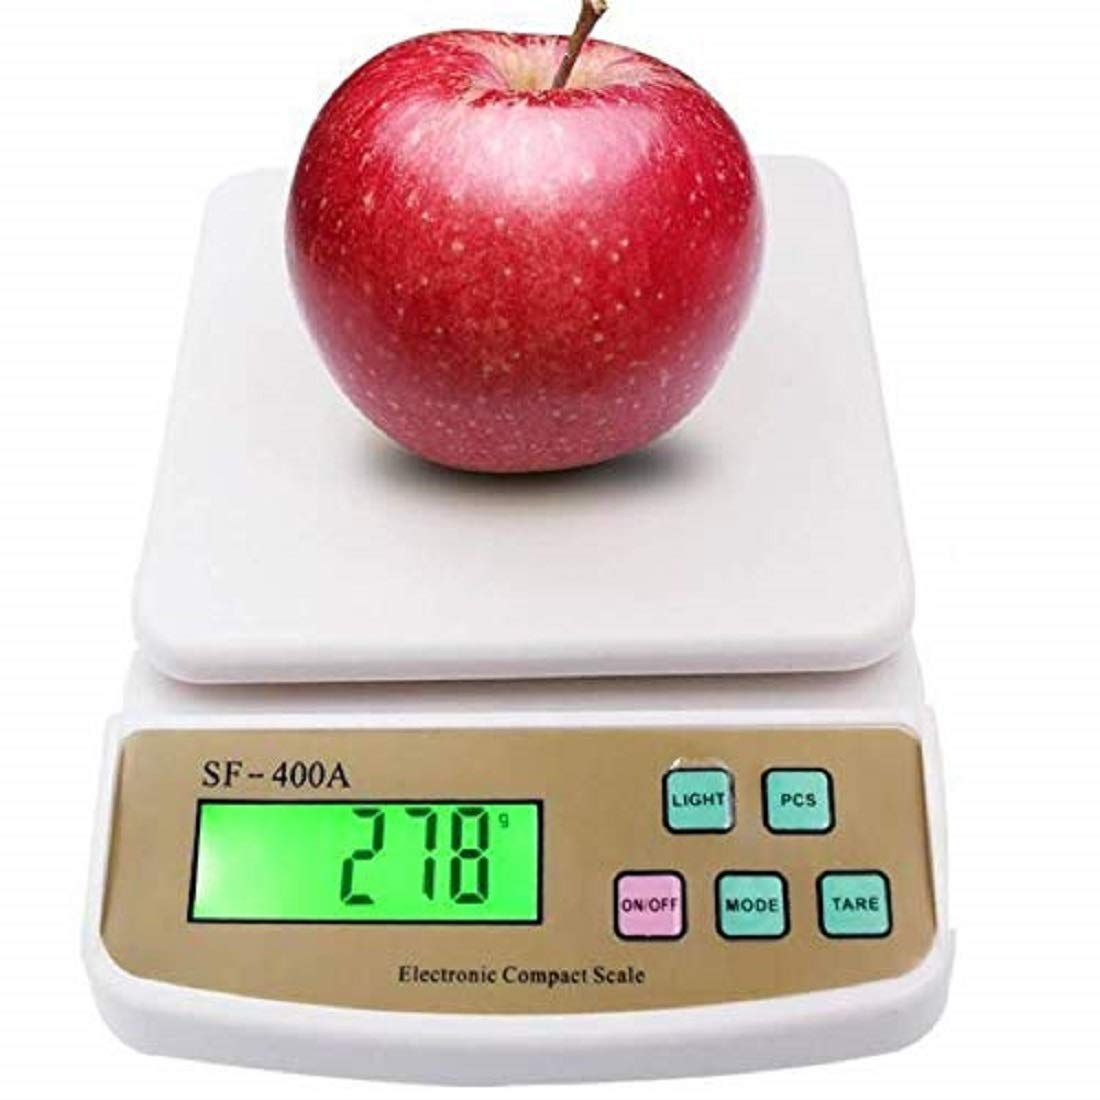 SF-400A Digital Kitchen Weighing Scales Weighing Capacity - 10 Kg